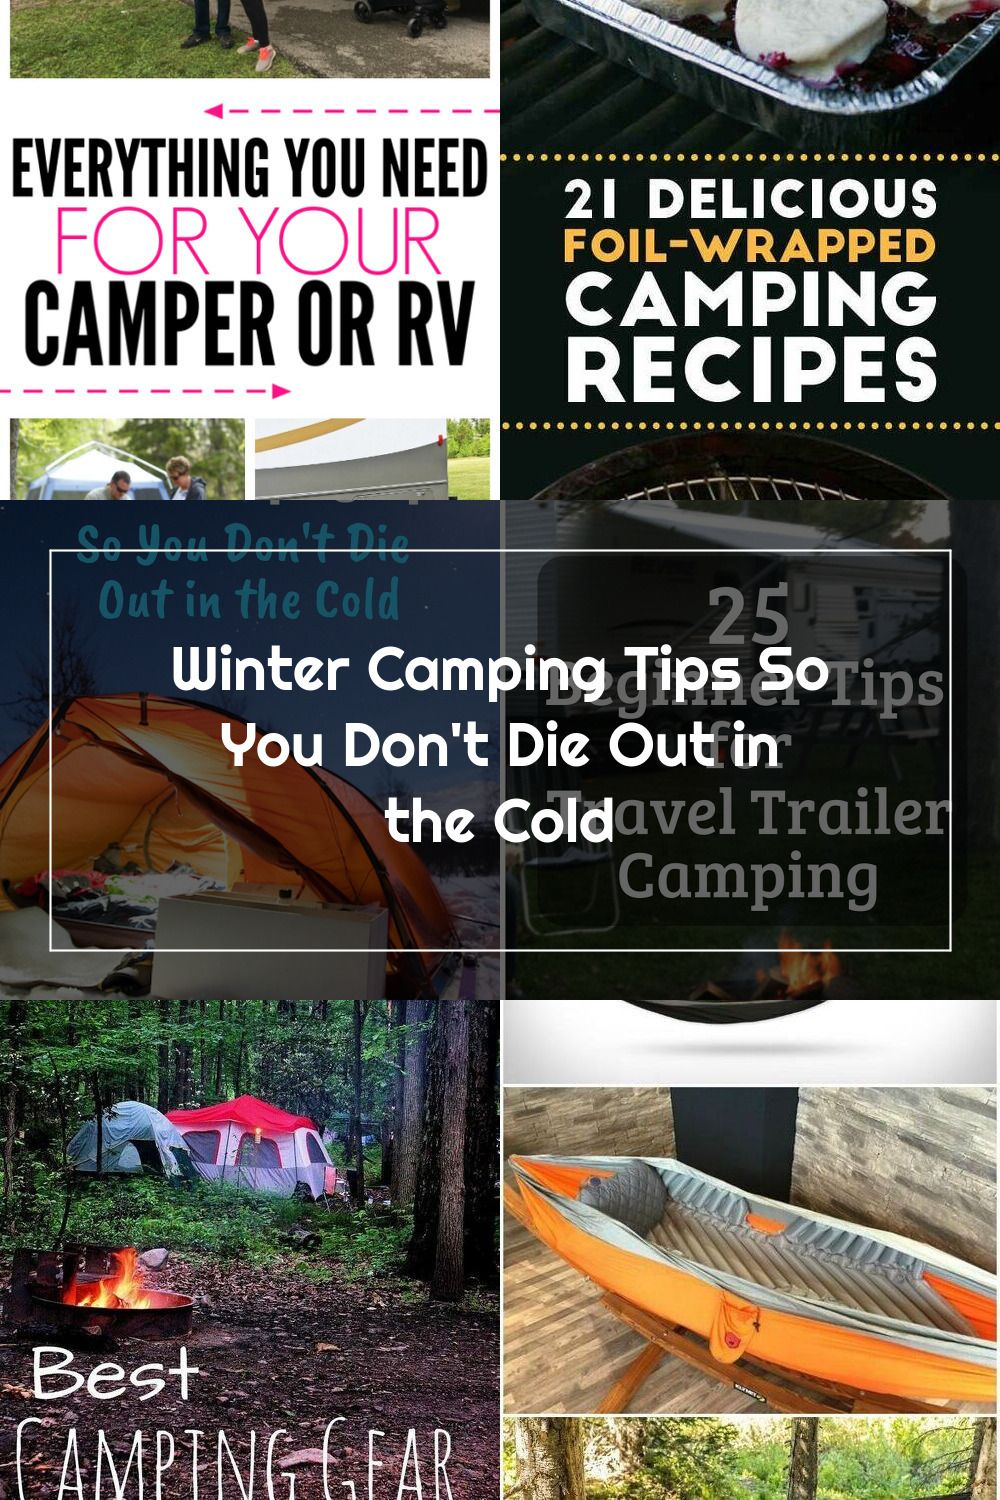 Winter Camping Tips so you don't die out there. Seriously ...